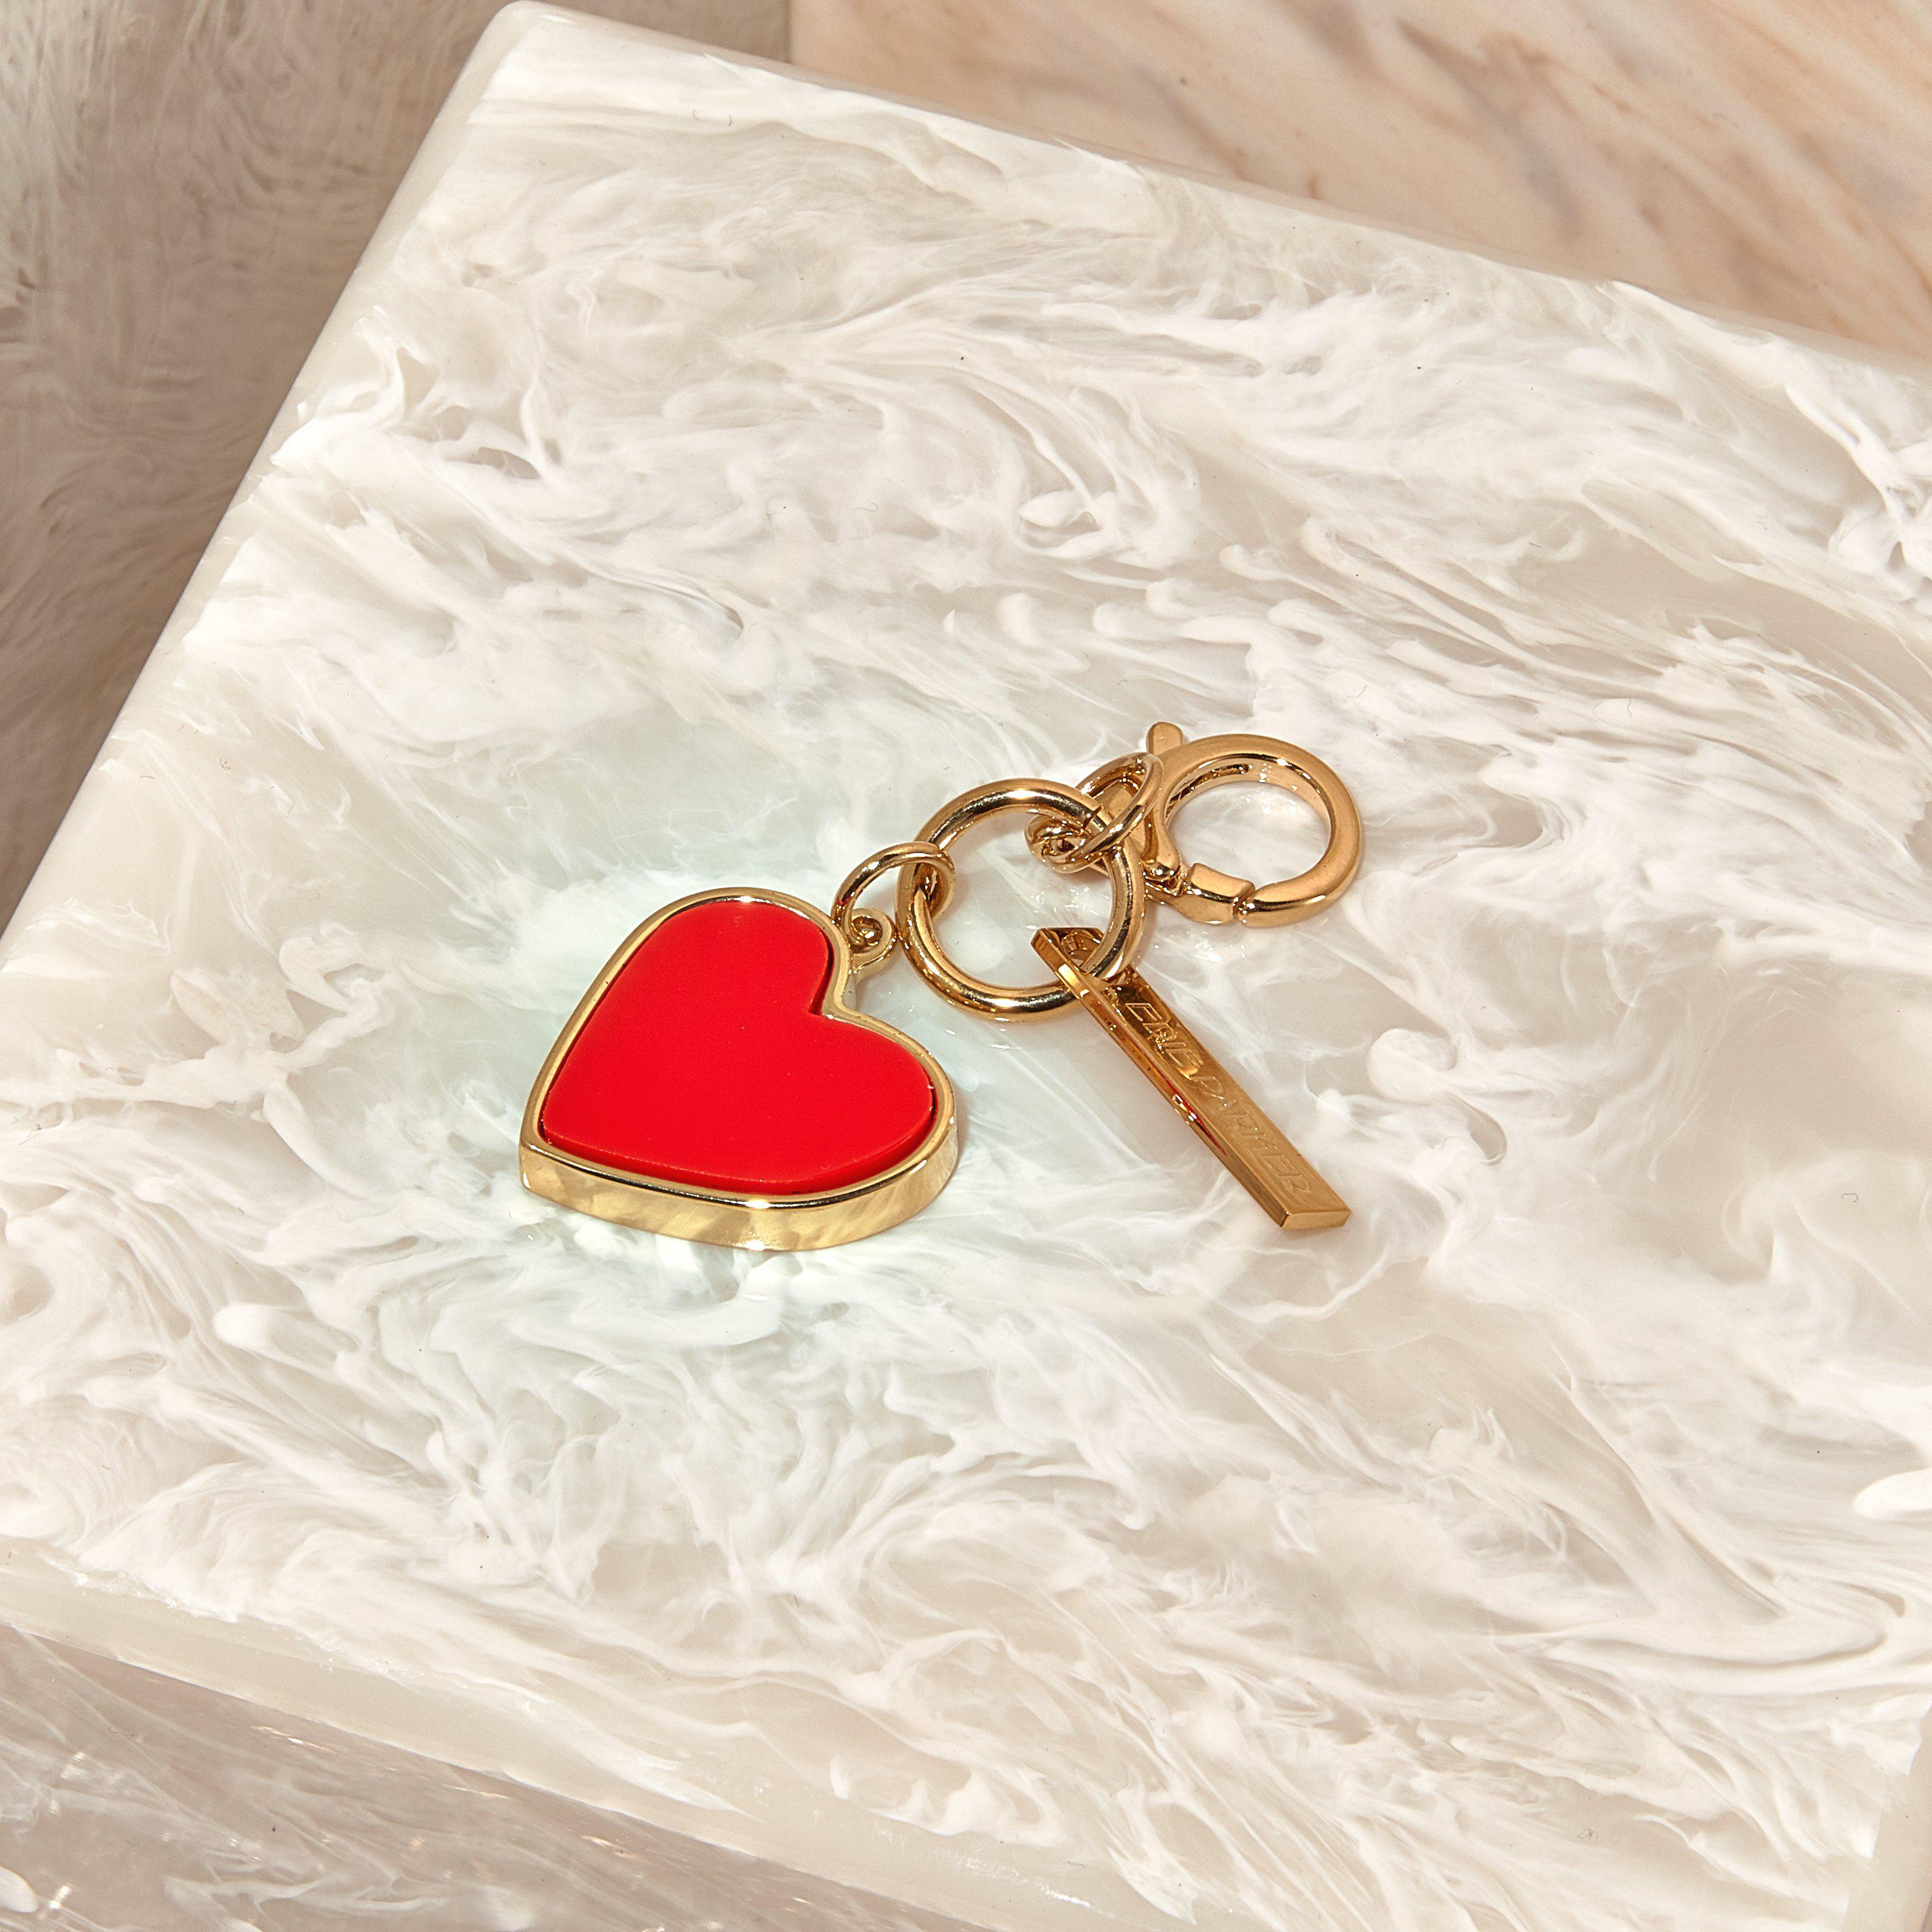 Heart Charm in Red